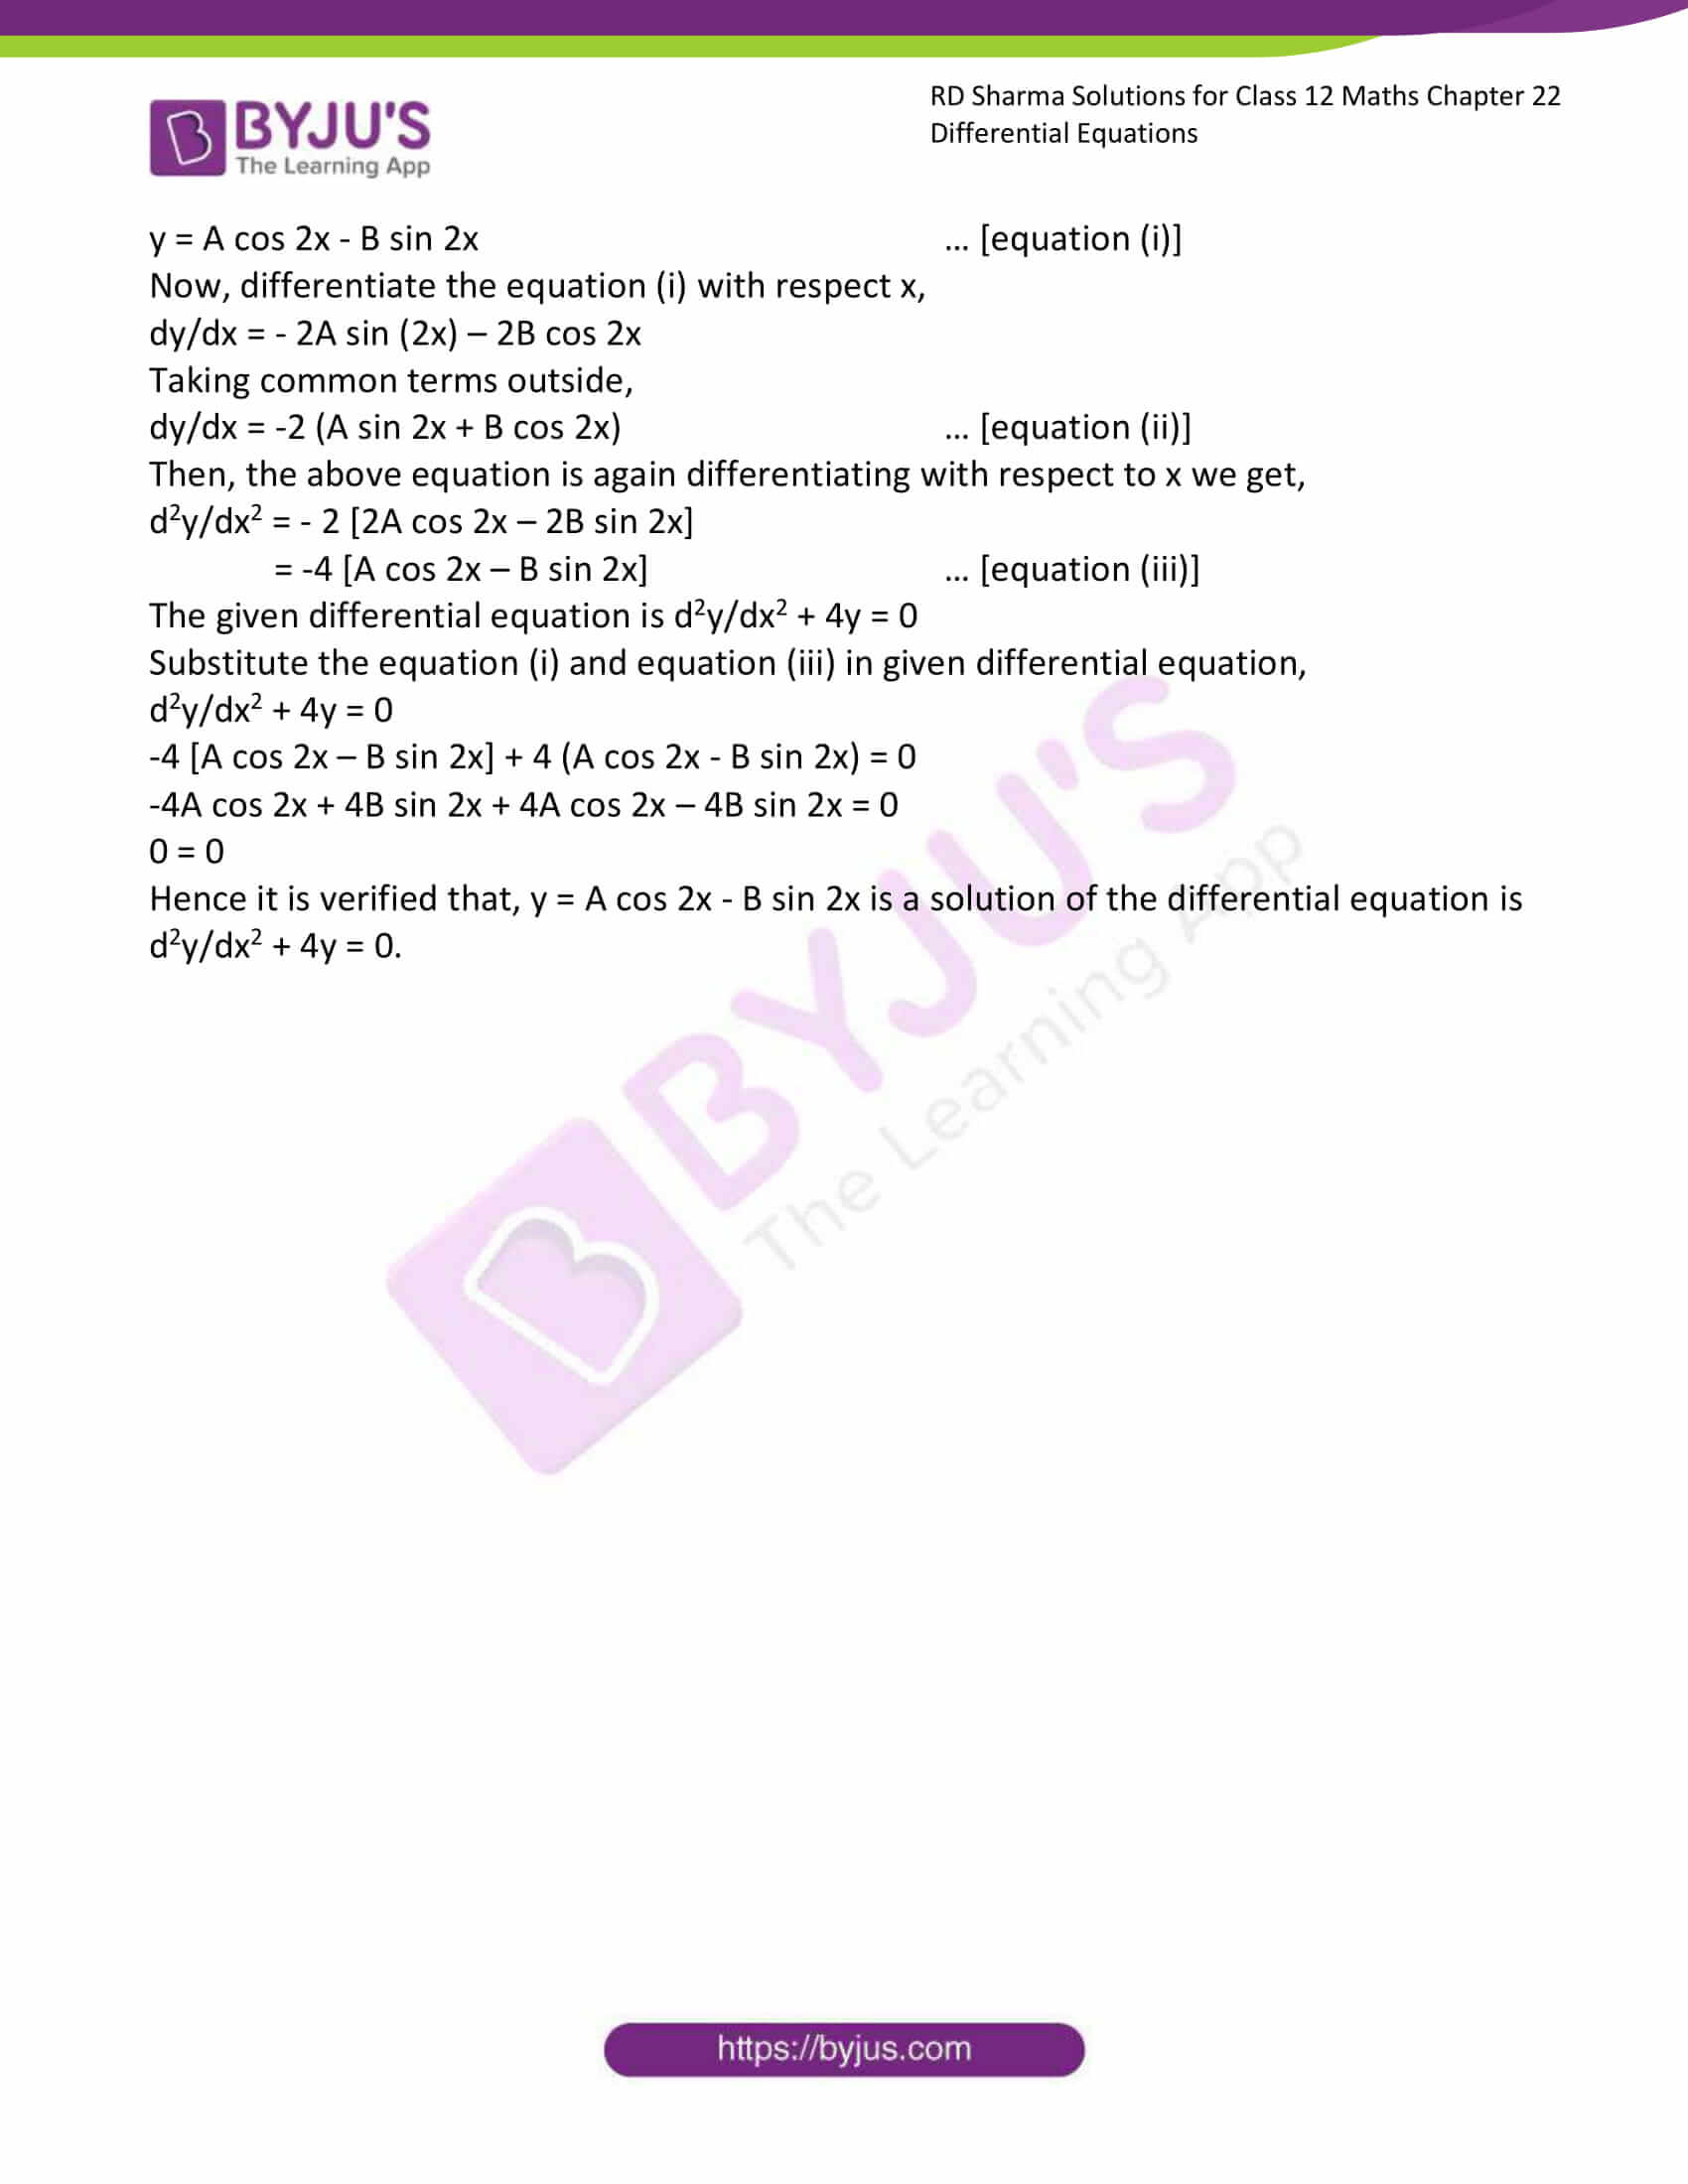 rd sharma solutions for class 12 maths chapter 22 ex 3 3